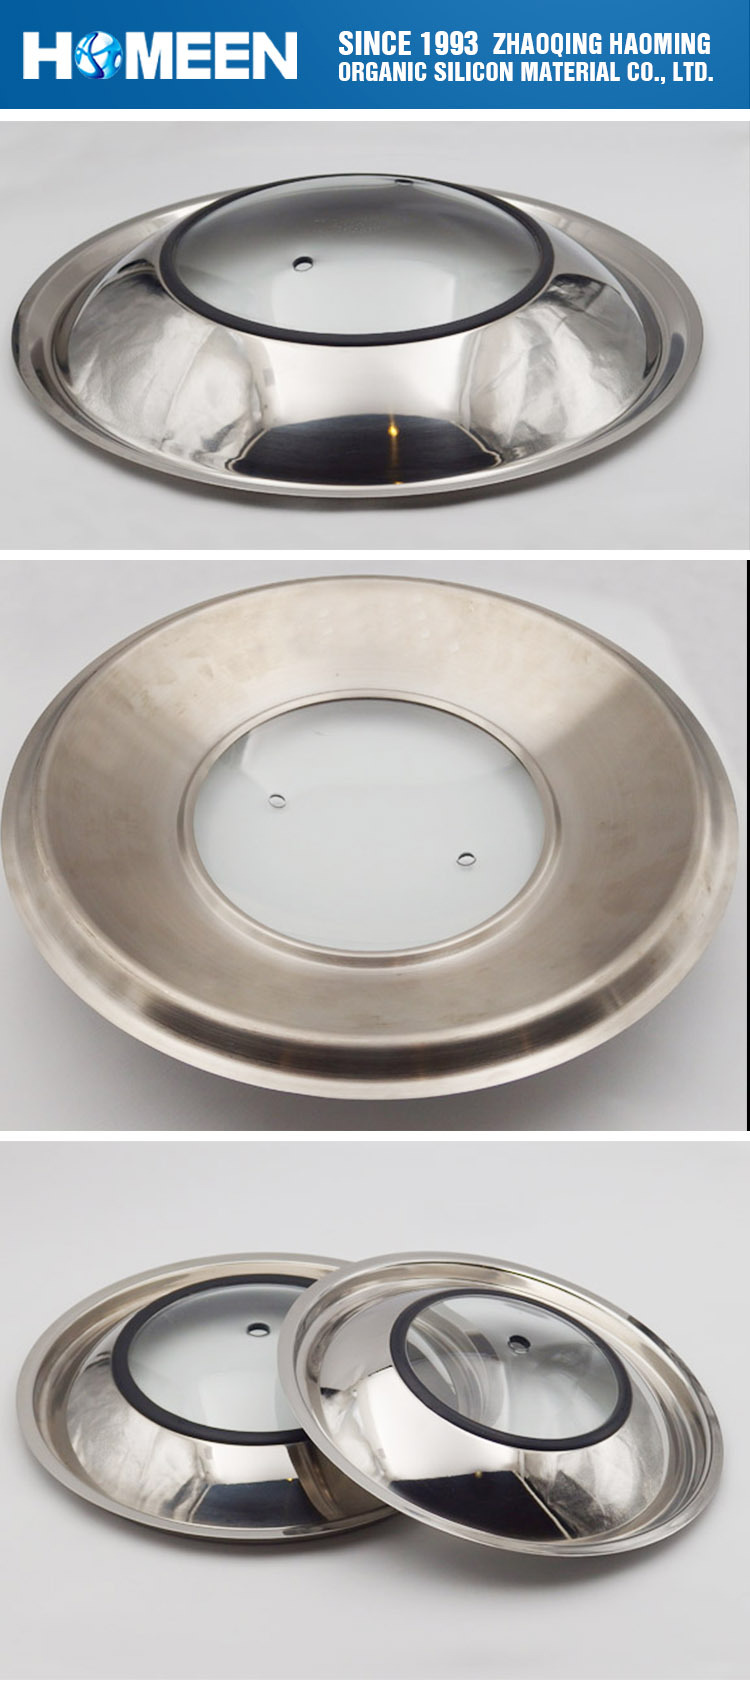 Glass Lids For Pots Pyrex Glass Lid For Cookware Tempered Glass Lid